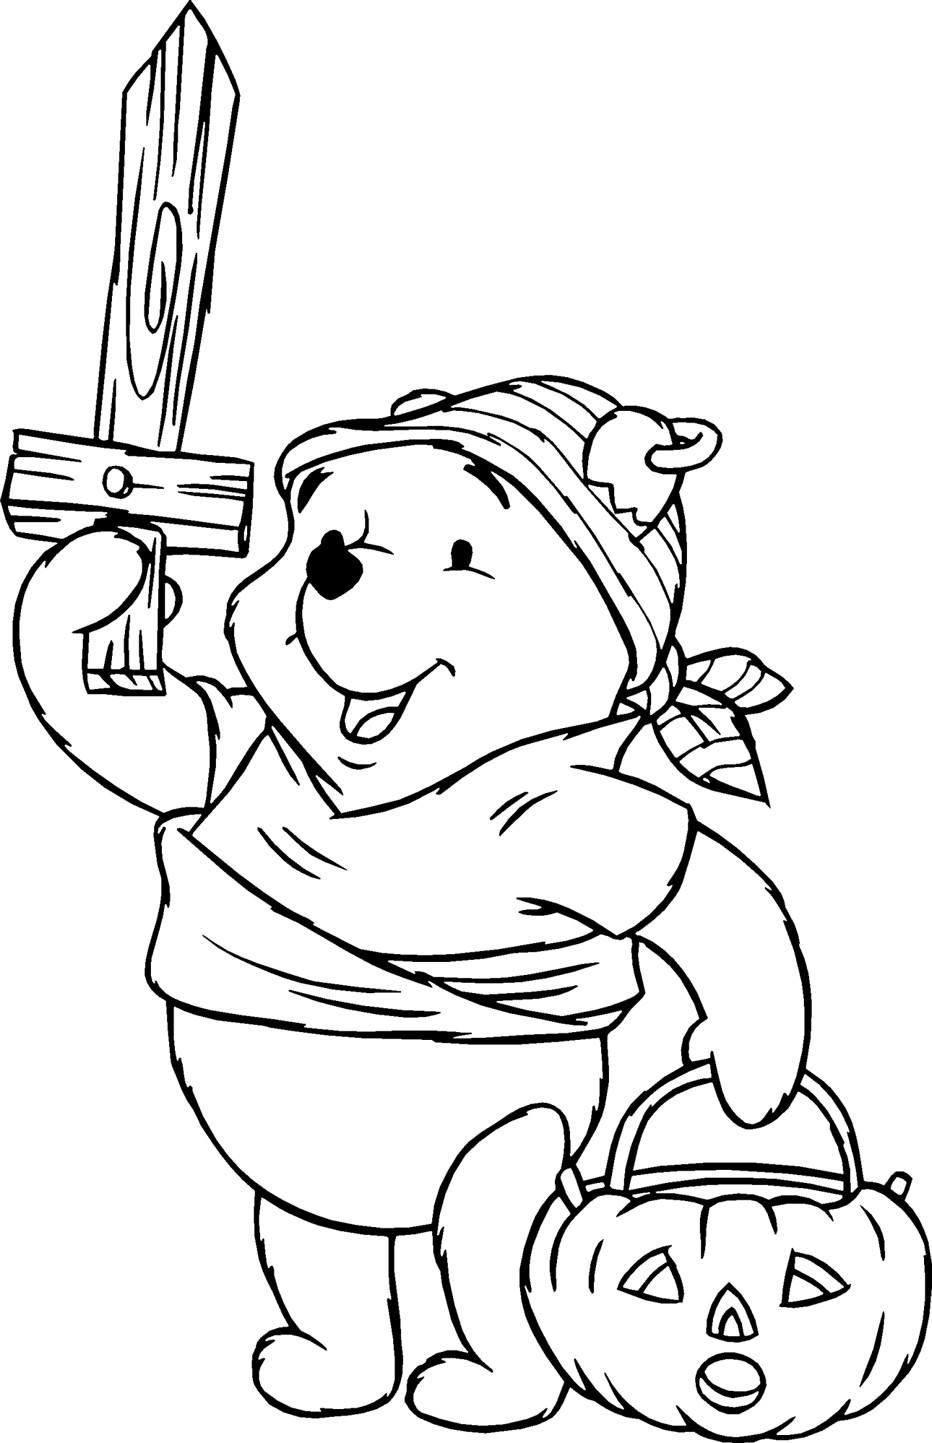 R kelly coloring pages -  Halloween Coloring Pages For Kids Free Printables Disney Winnie The Pooh Pirate